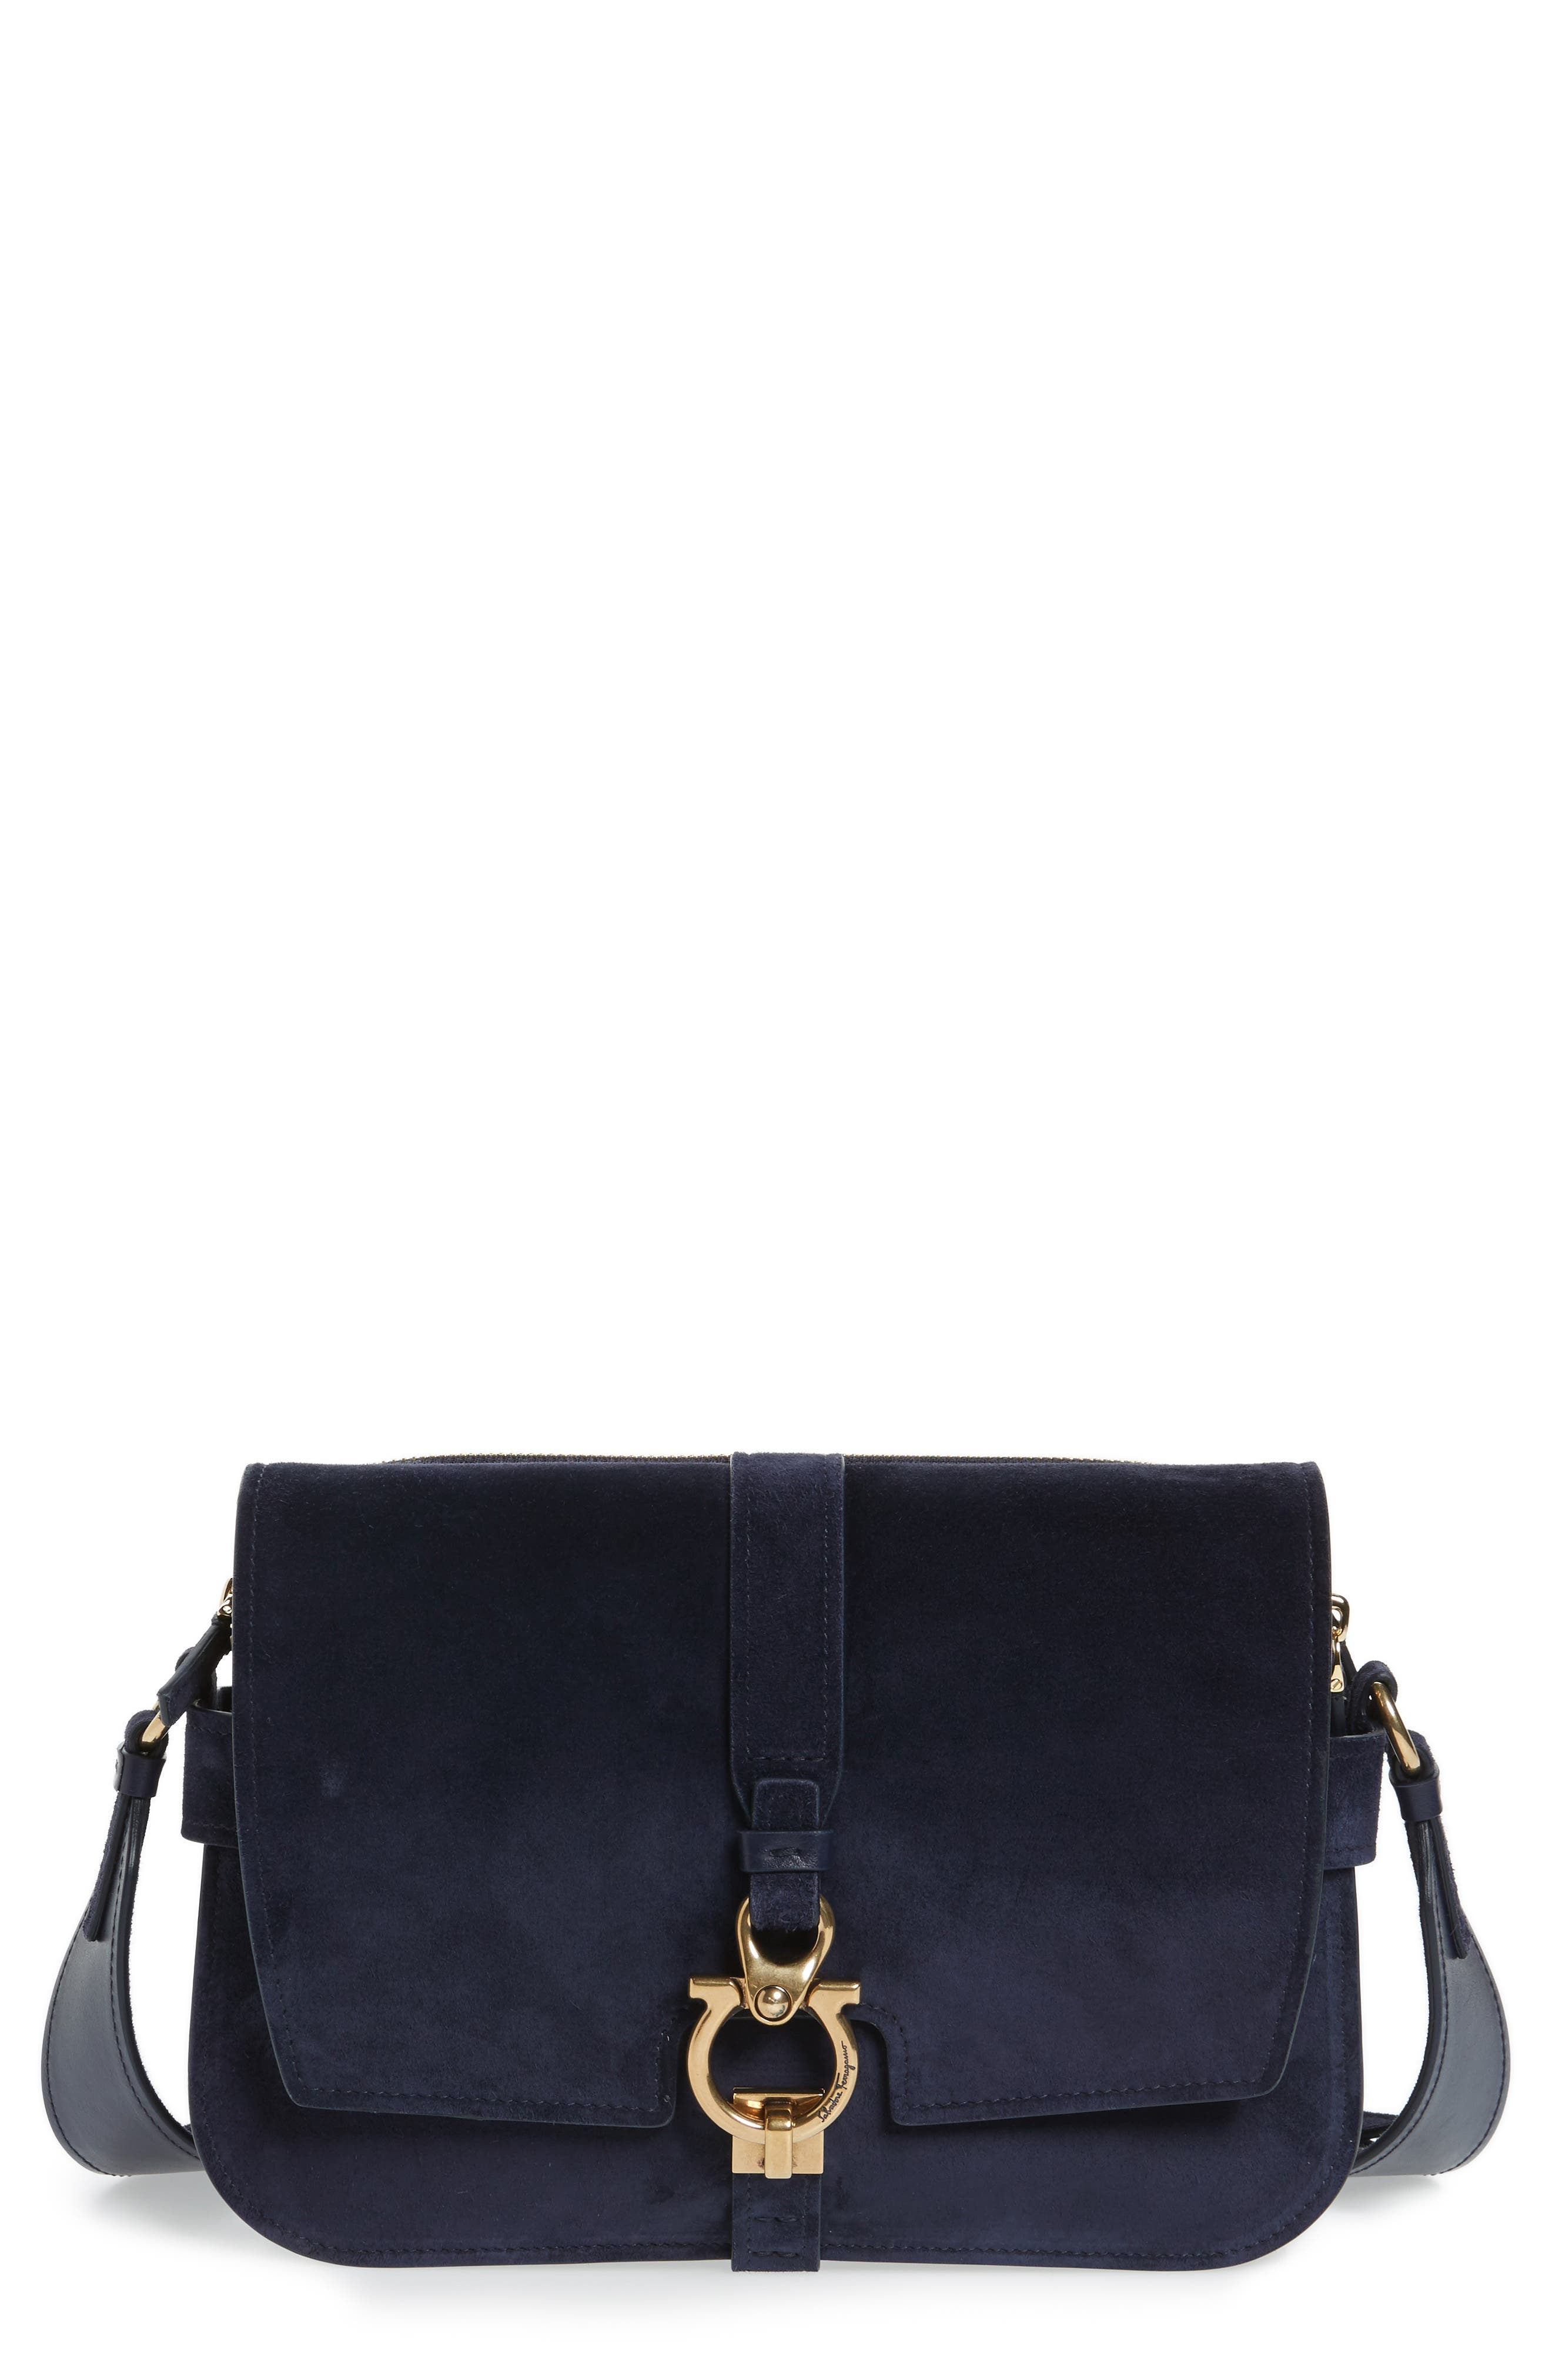 Salvatore Ferragamo Suede Crossbody Bag